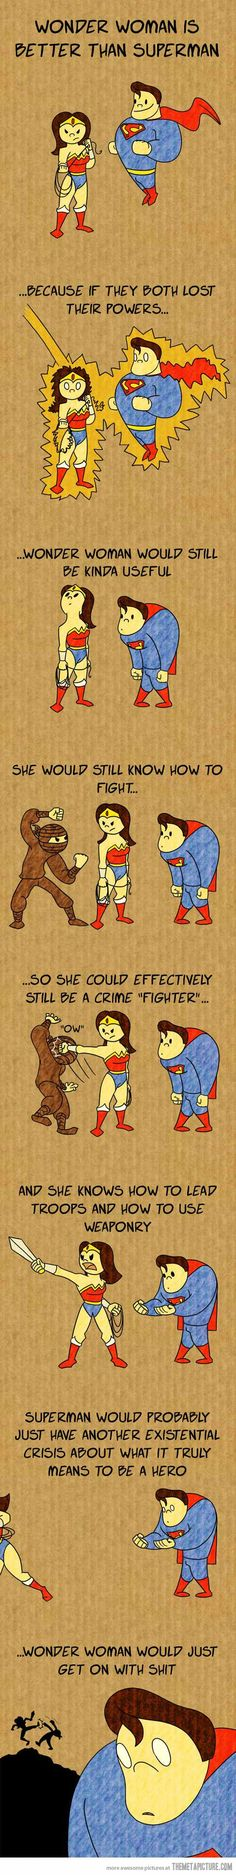 #WonderWoman vs. #SuperMan